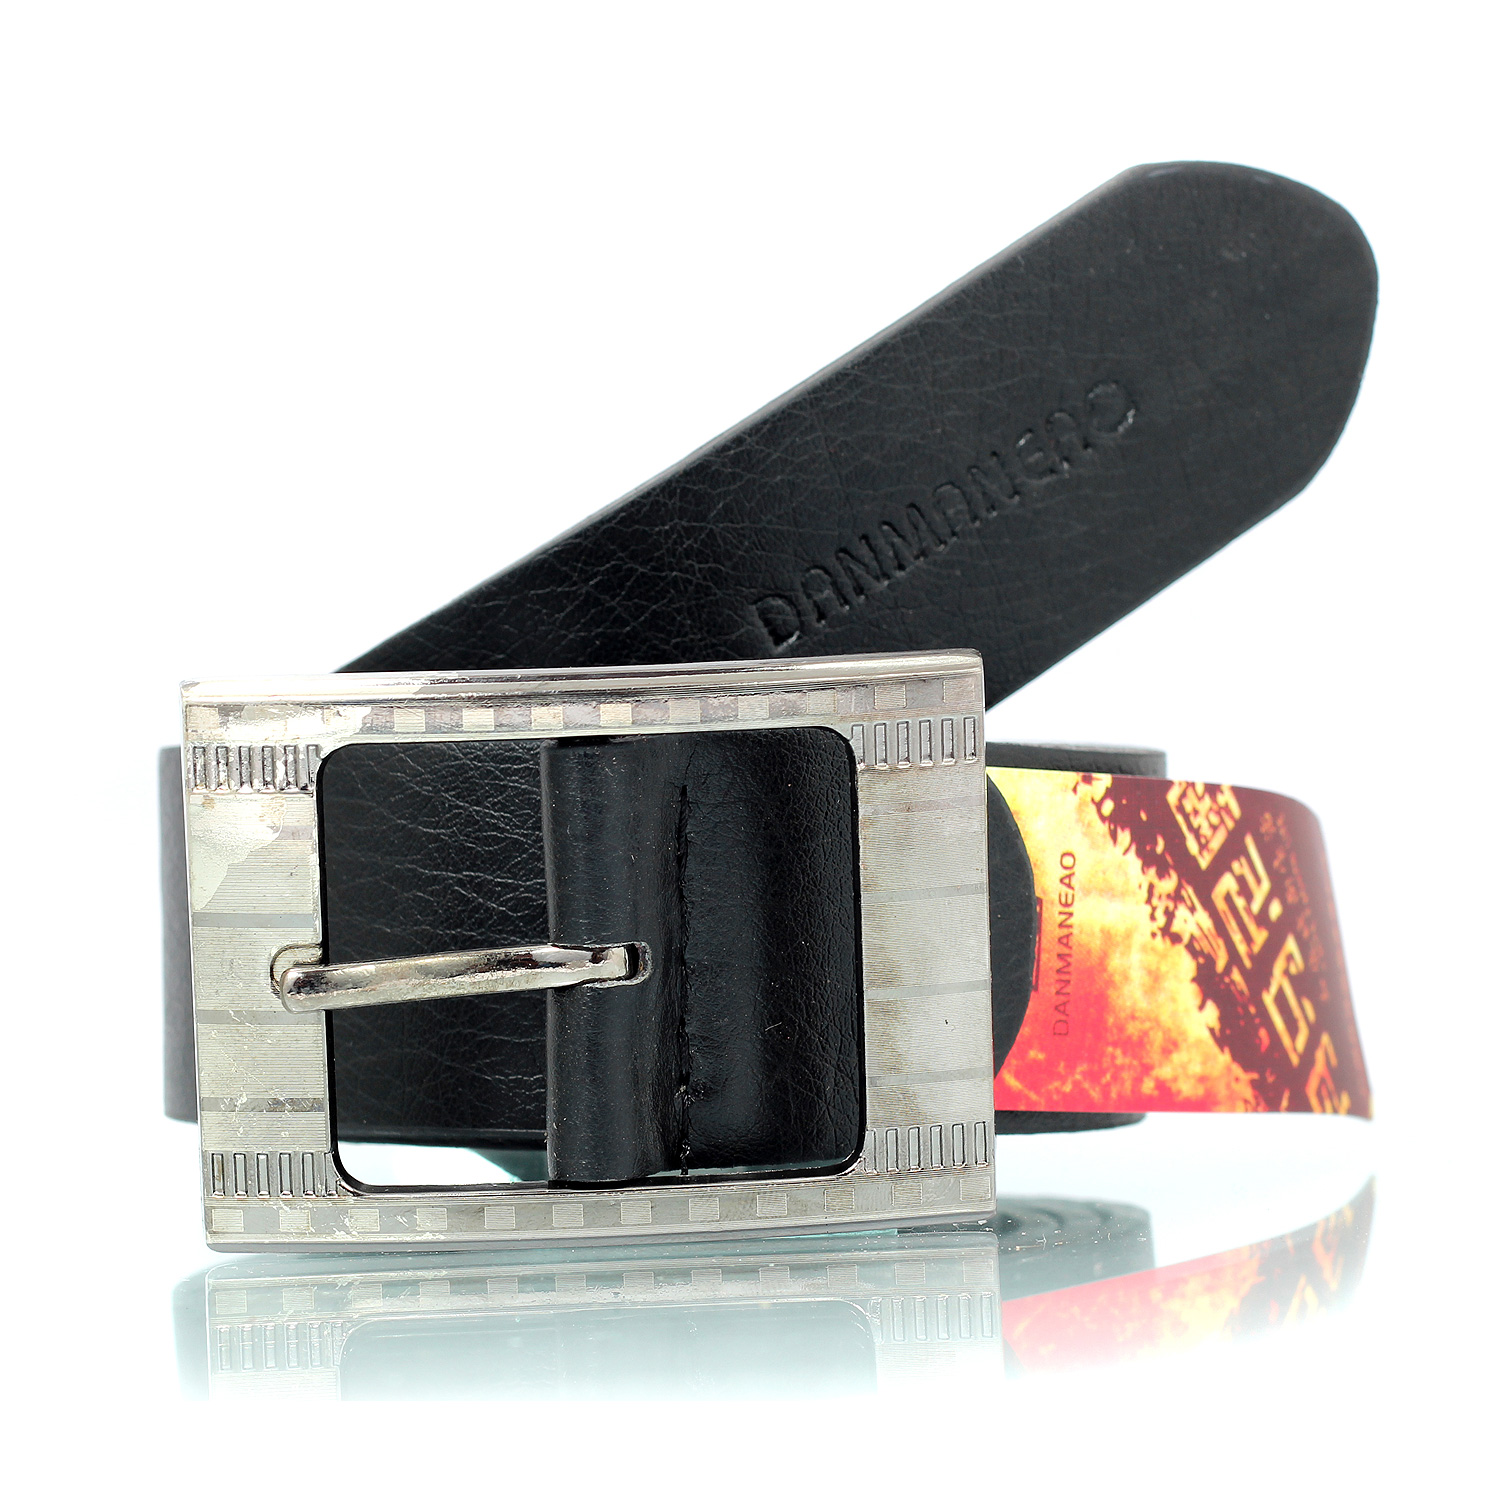 Graceful and Official Leather Belt for Men Danmaneo Print